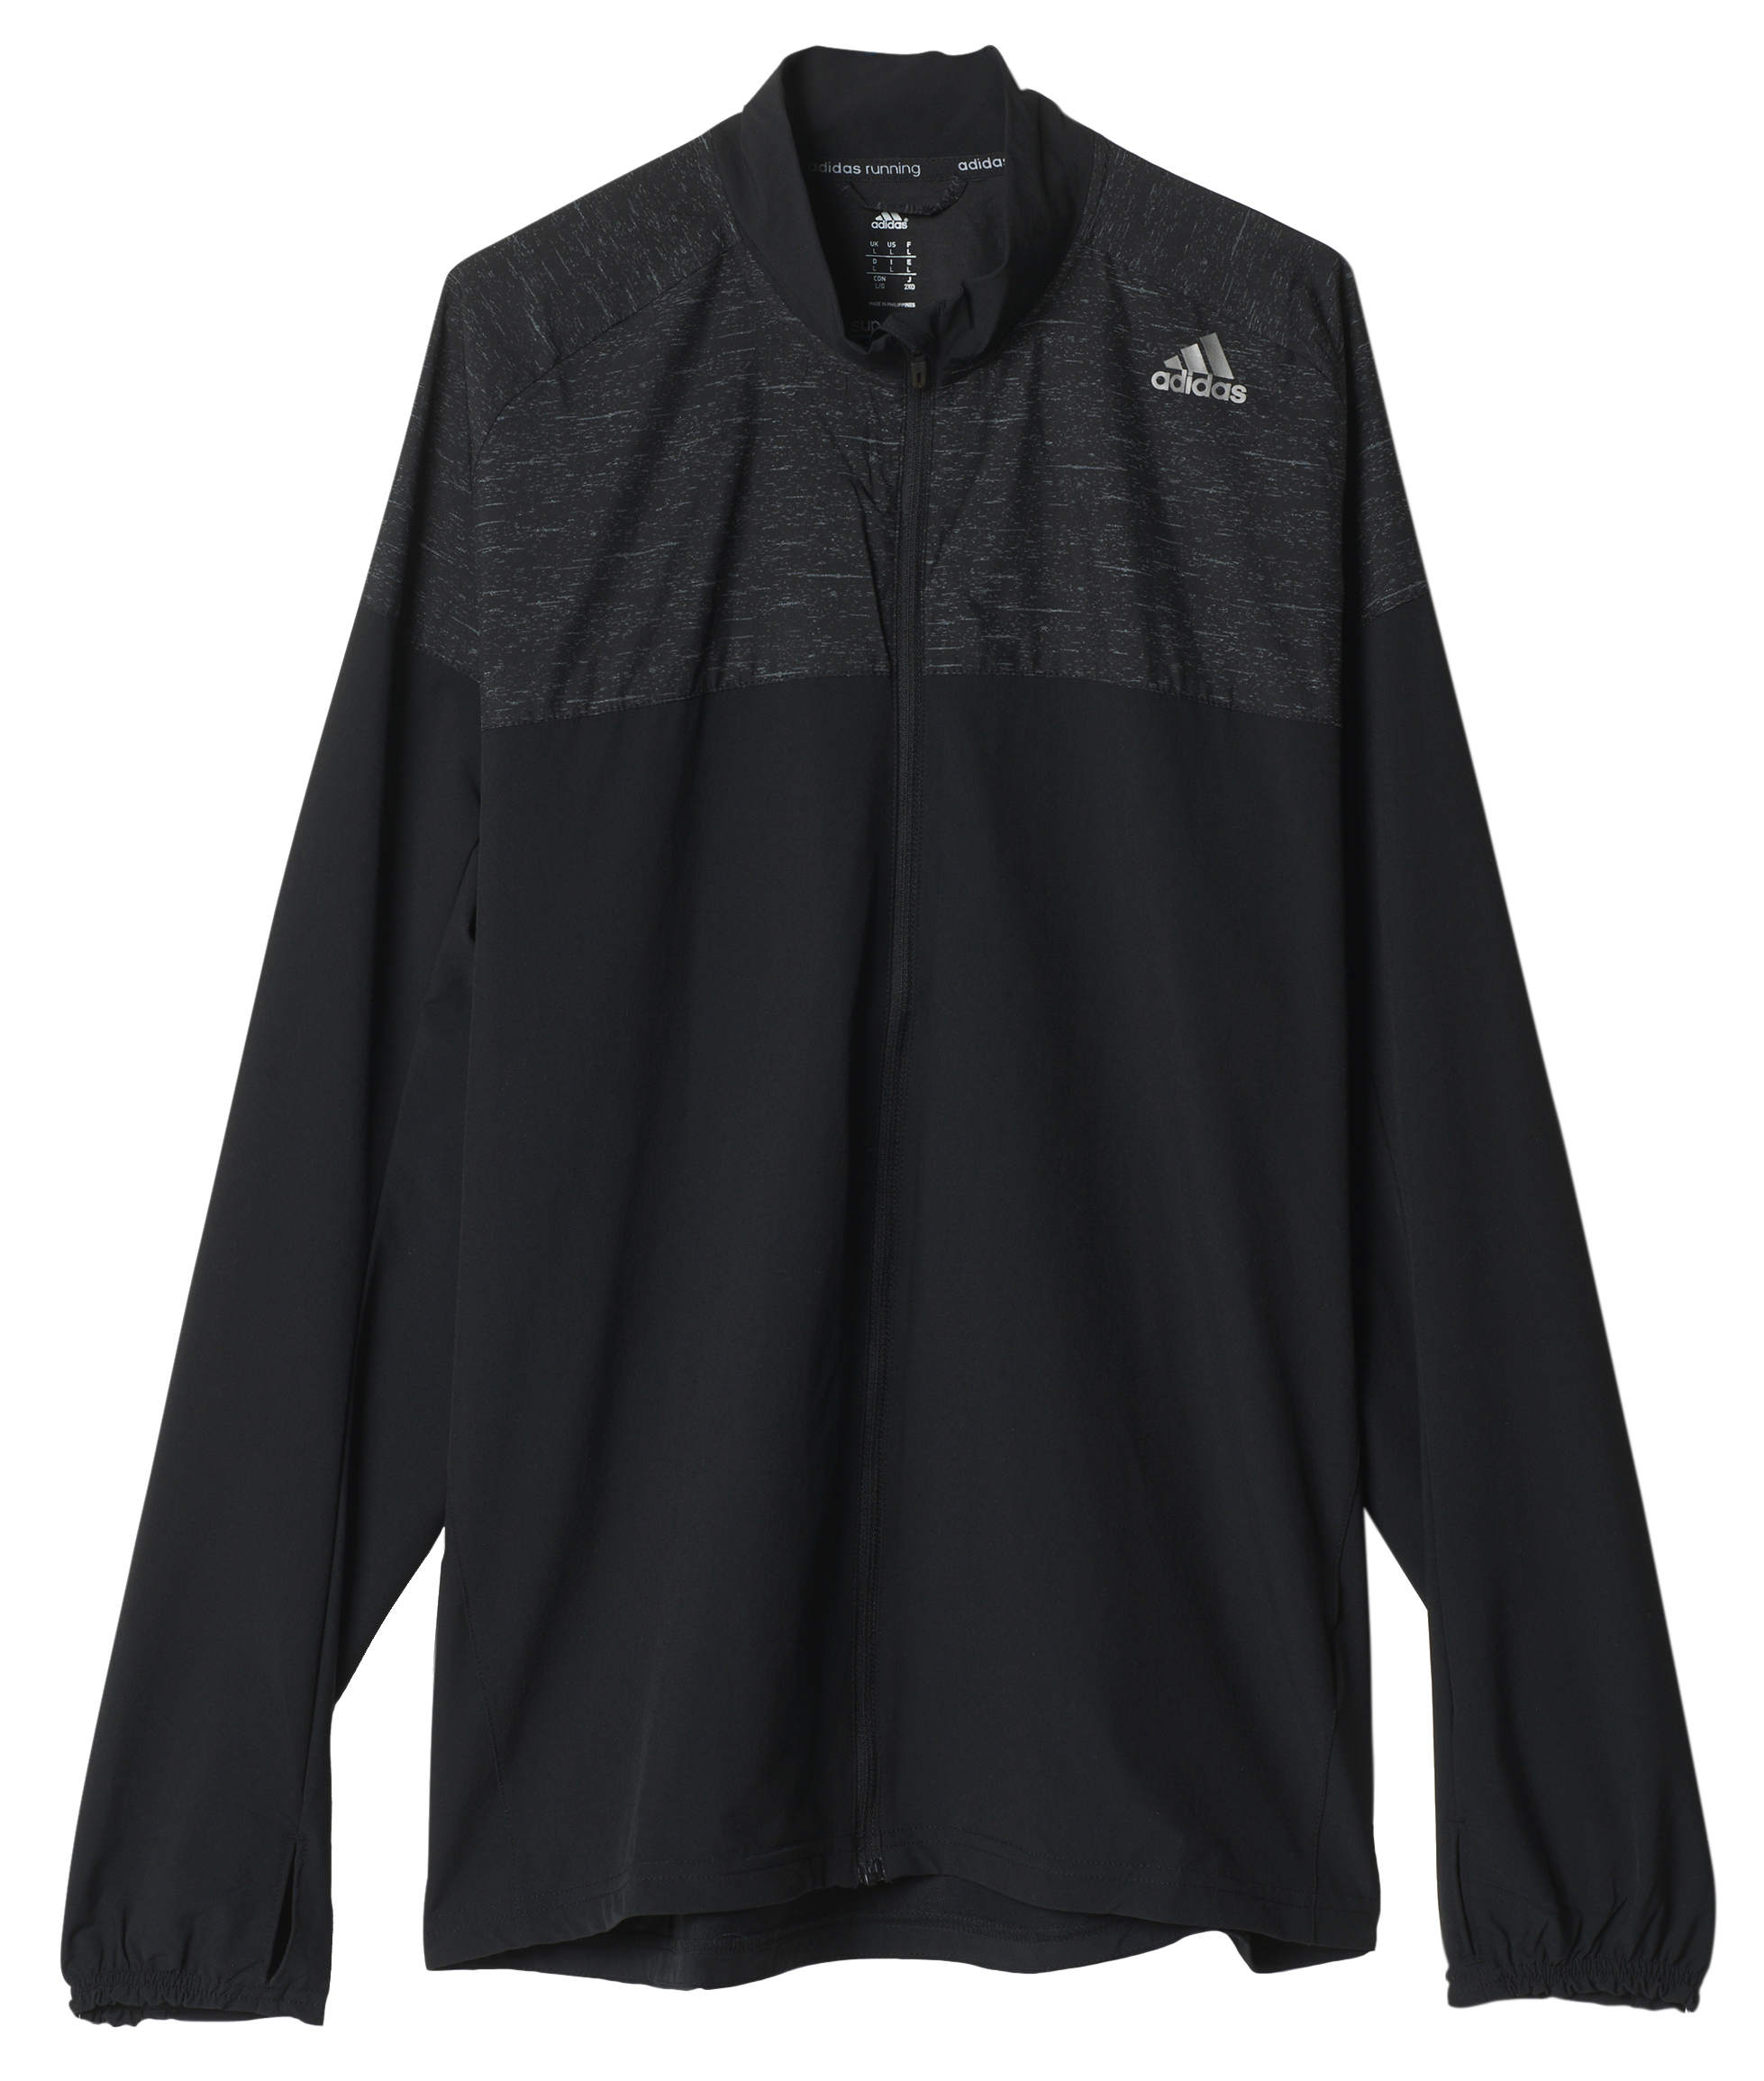 adidas Supernova Storm Mens Running Jacket Black | eBay